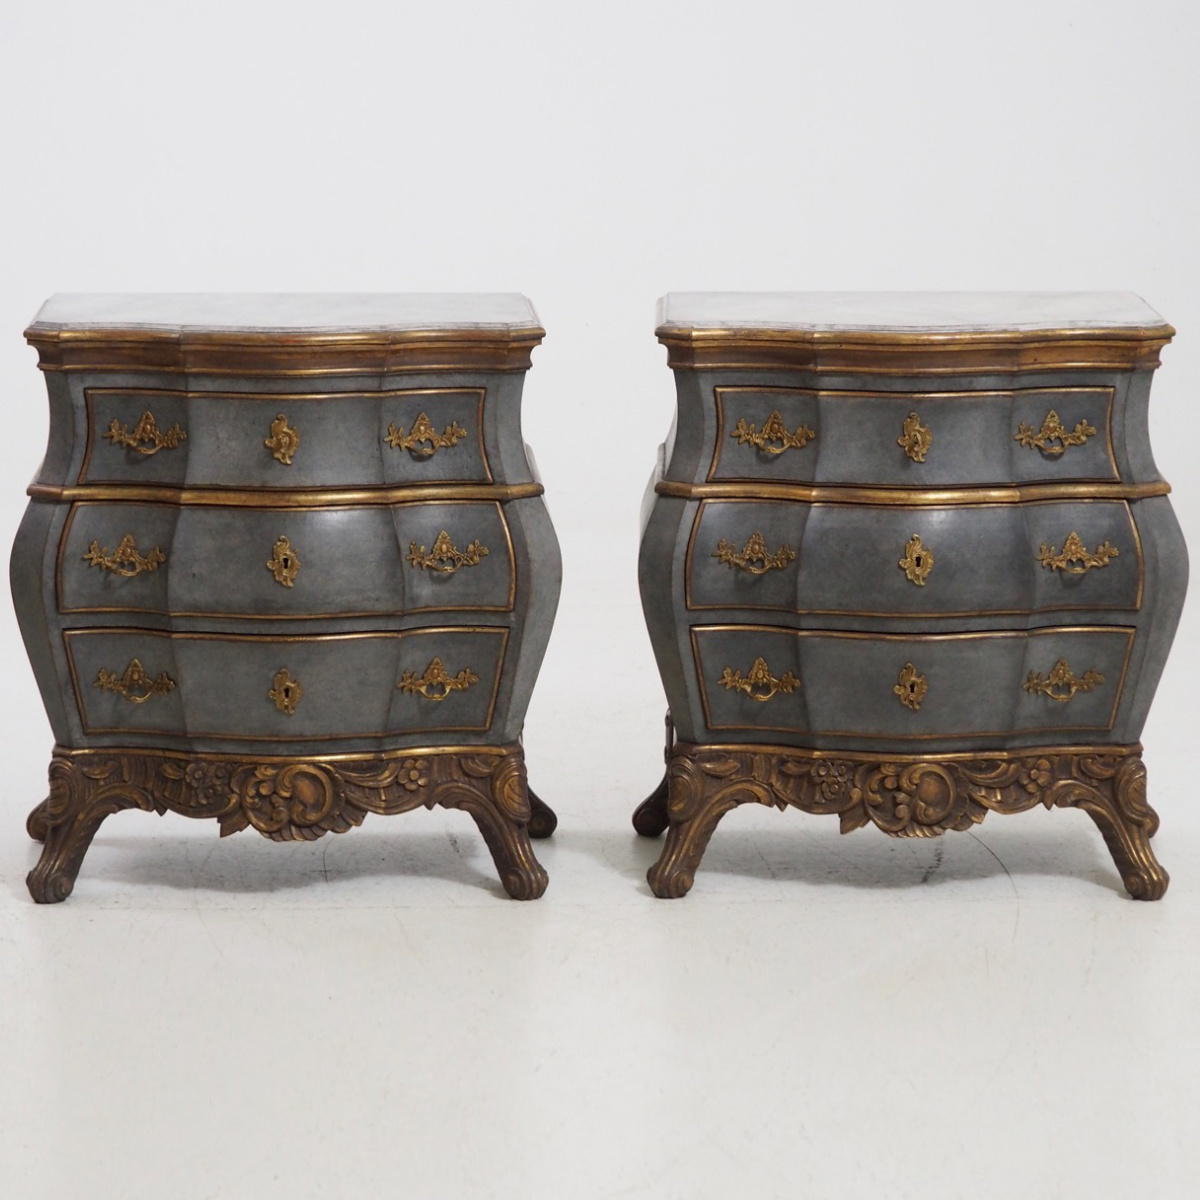 Pair of chests, end 19th C. - € 4.500